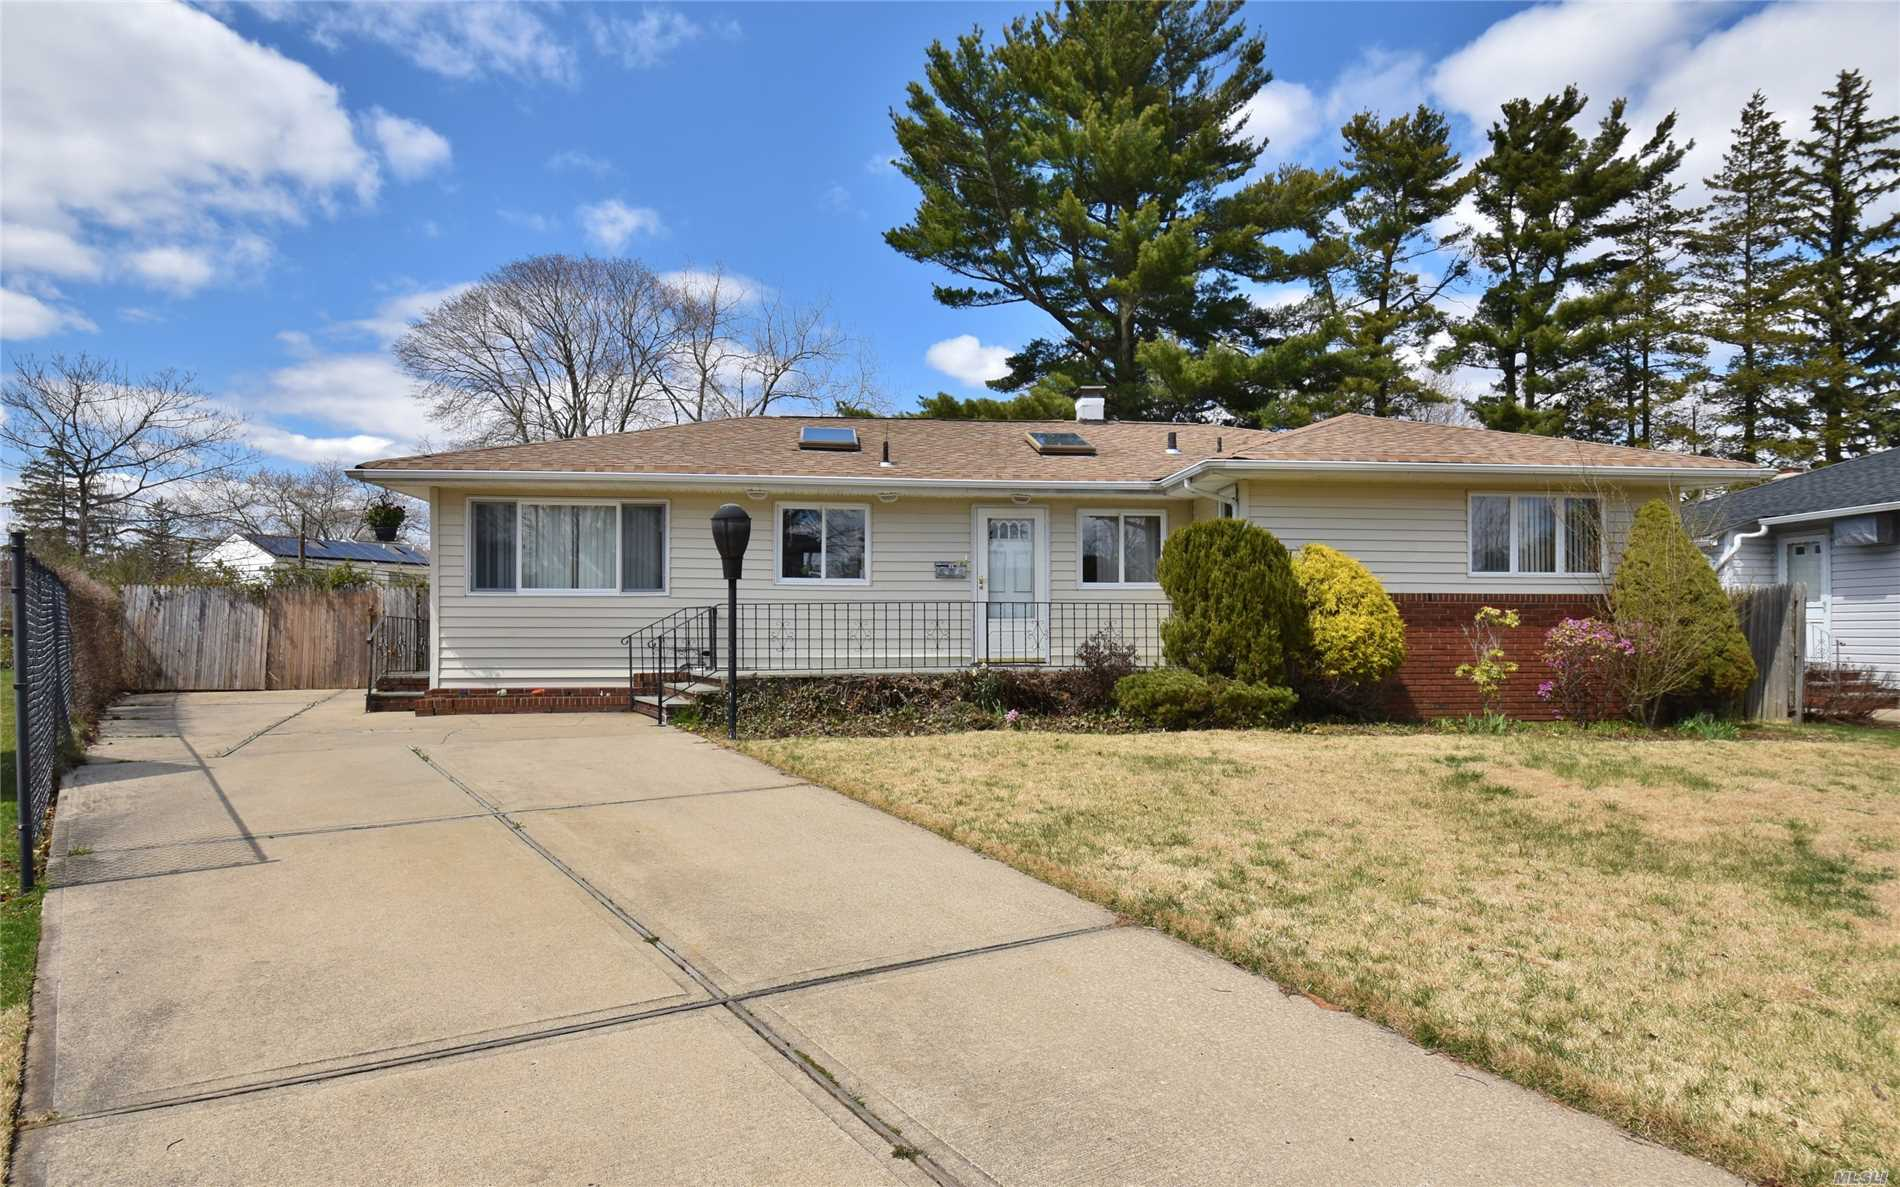 Absolutely Magnicent Ranch Style House On A Dead End Cul De Sac. Great Location. No Car Through Traffic. Close Proximity To Great Shopping, Worship, Long Island Expressway, Northern St Parkway, Seaford Oyster Bay Expressway. 10 Minutes To Lirr This House Has Great Sunlight. Offers An Oversized Backyard. It Also Offers A Legal Mother Daughter Apartment. Bring Mom And Dad,  Low Taxes, Less Then 11, 000 With Star Without Mother Daughter. Award Winning Plainview Old Bethpage Schools.